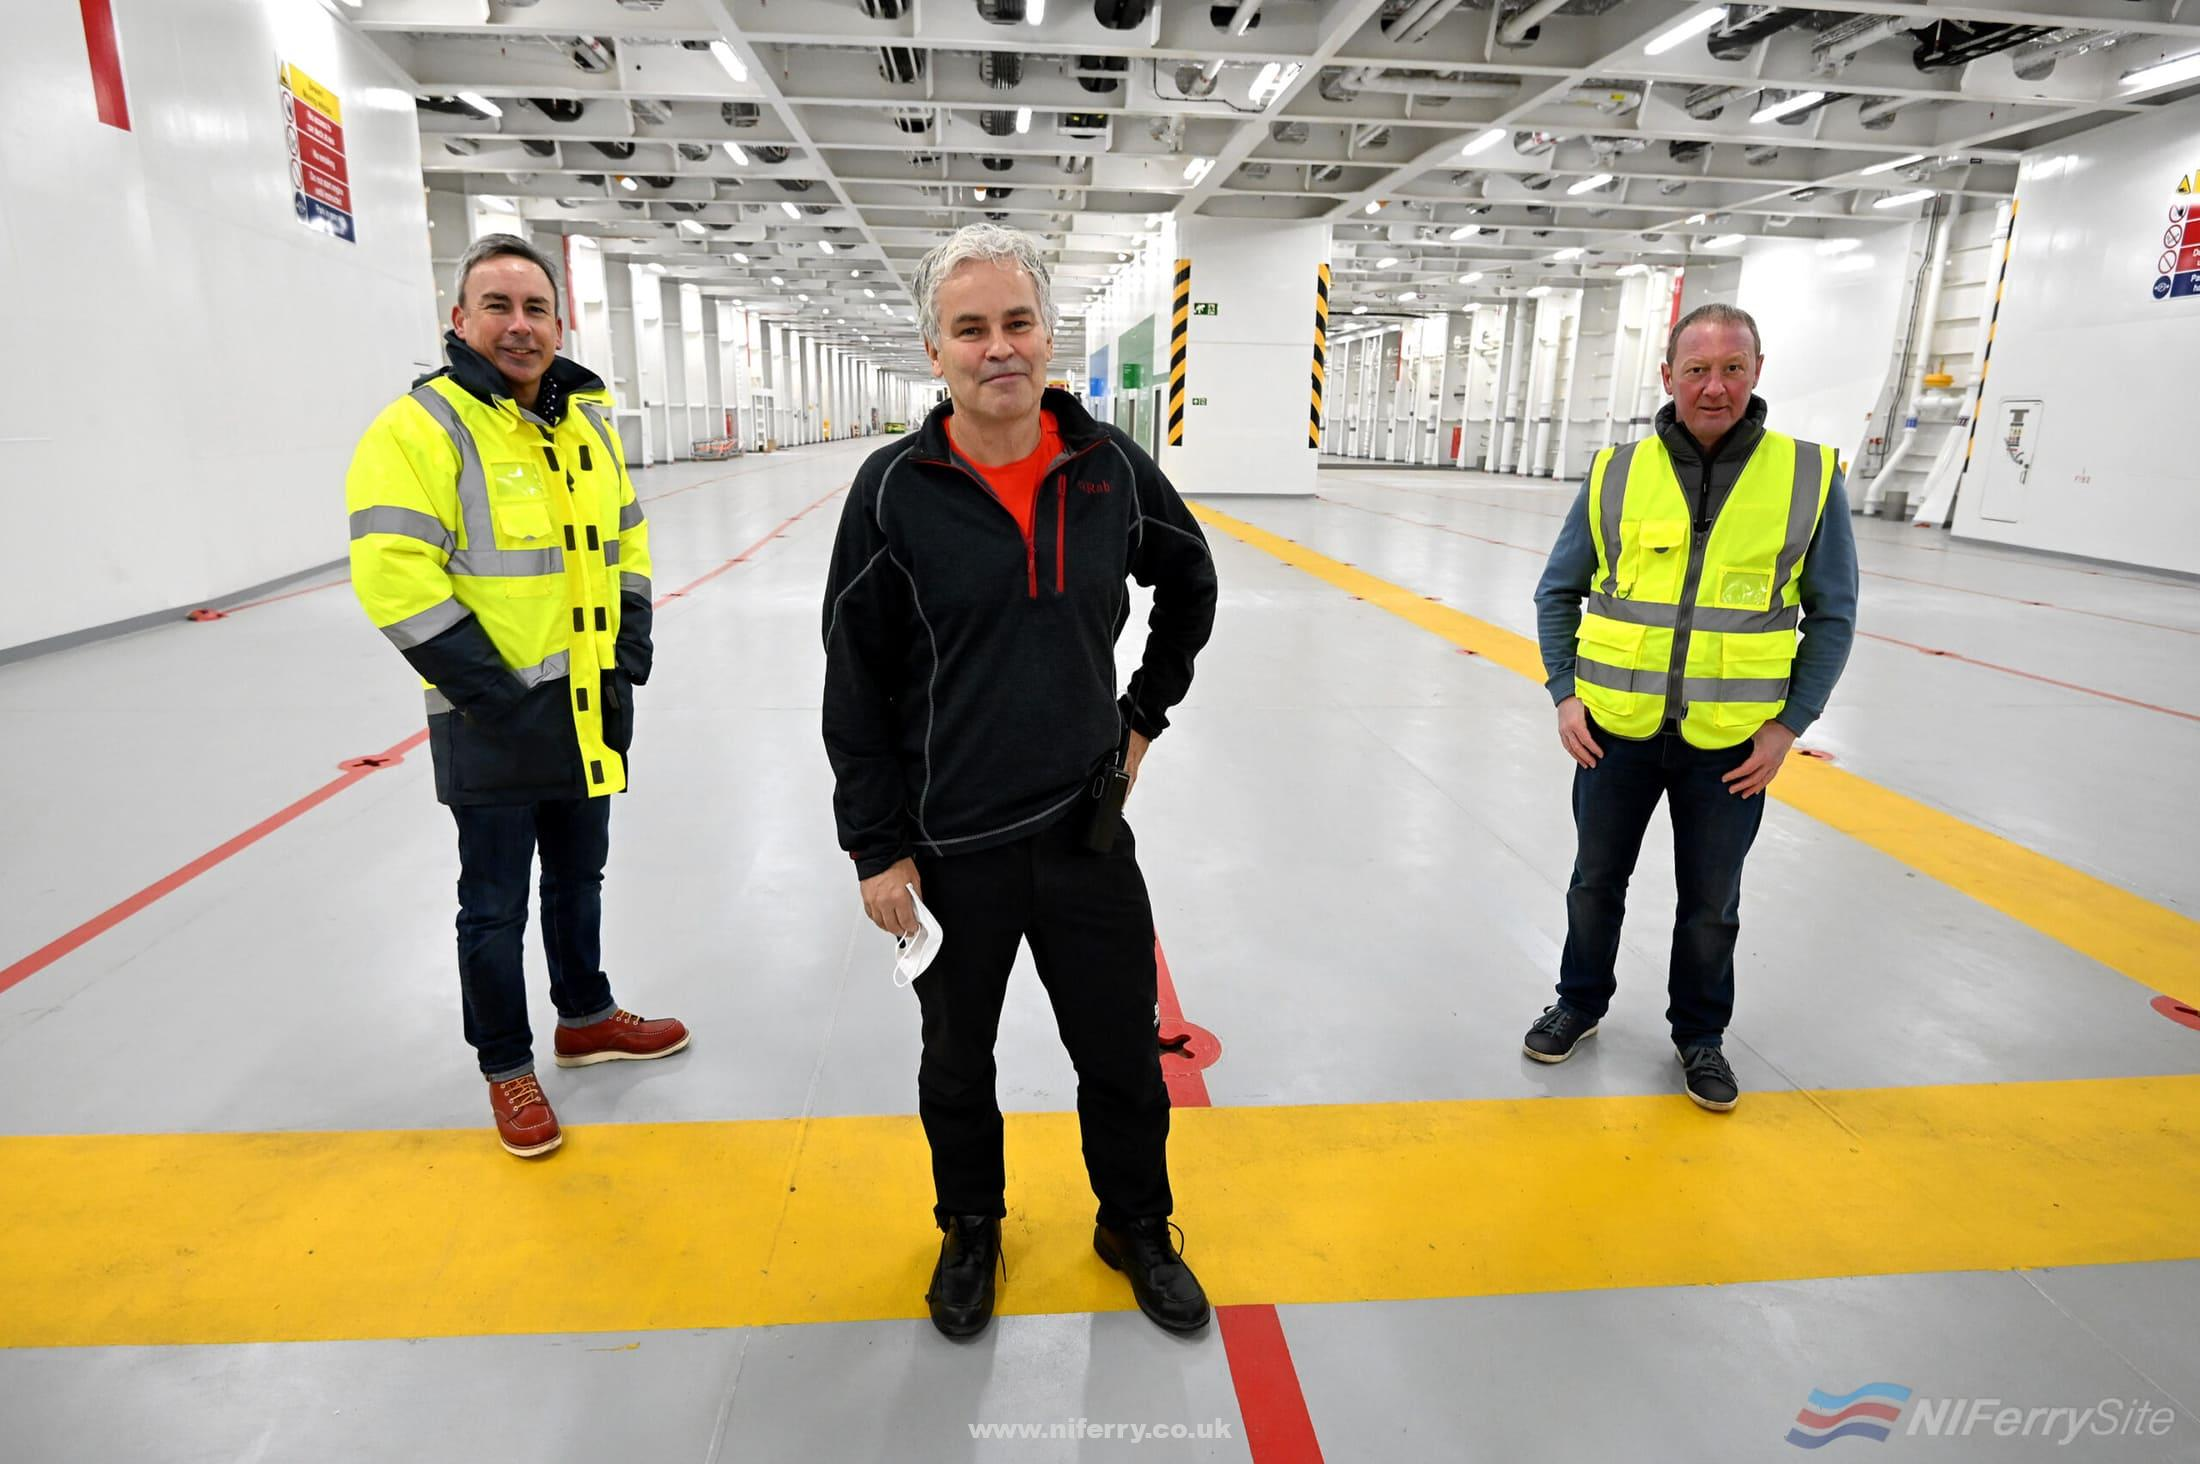 Paul Grant (Trade Director Irish Sea), Captain Neil Whittaker (Senior Master - Stena Embla), and Howard Hillis (Operations Manager) on the vehicle deck of STENA EMBLA. Stena Line.